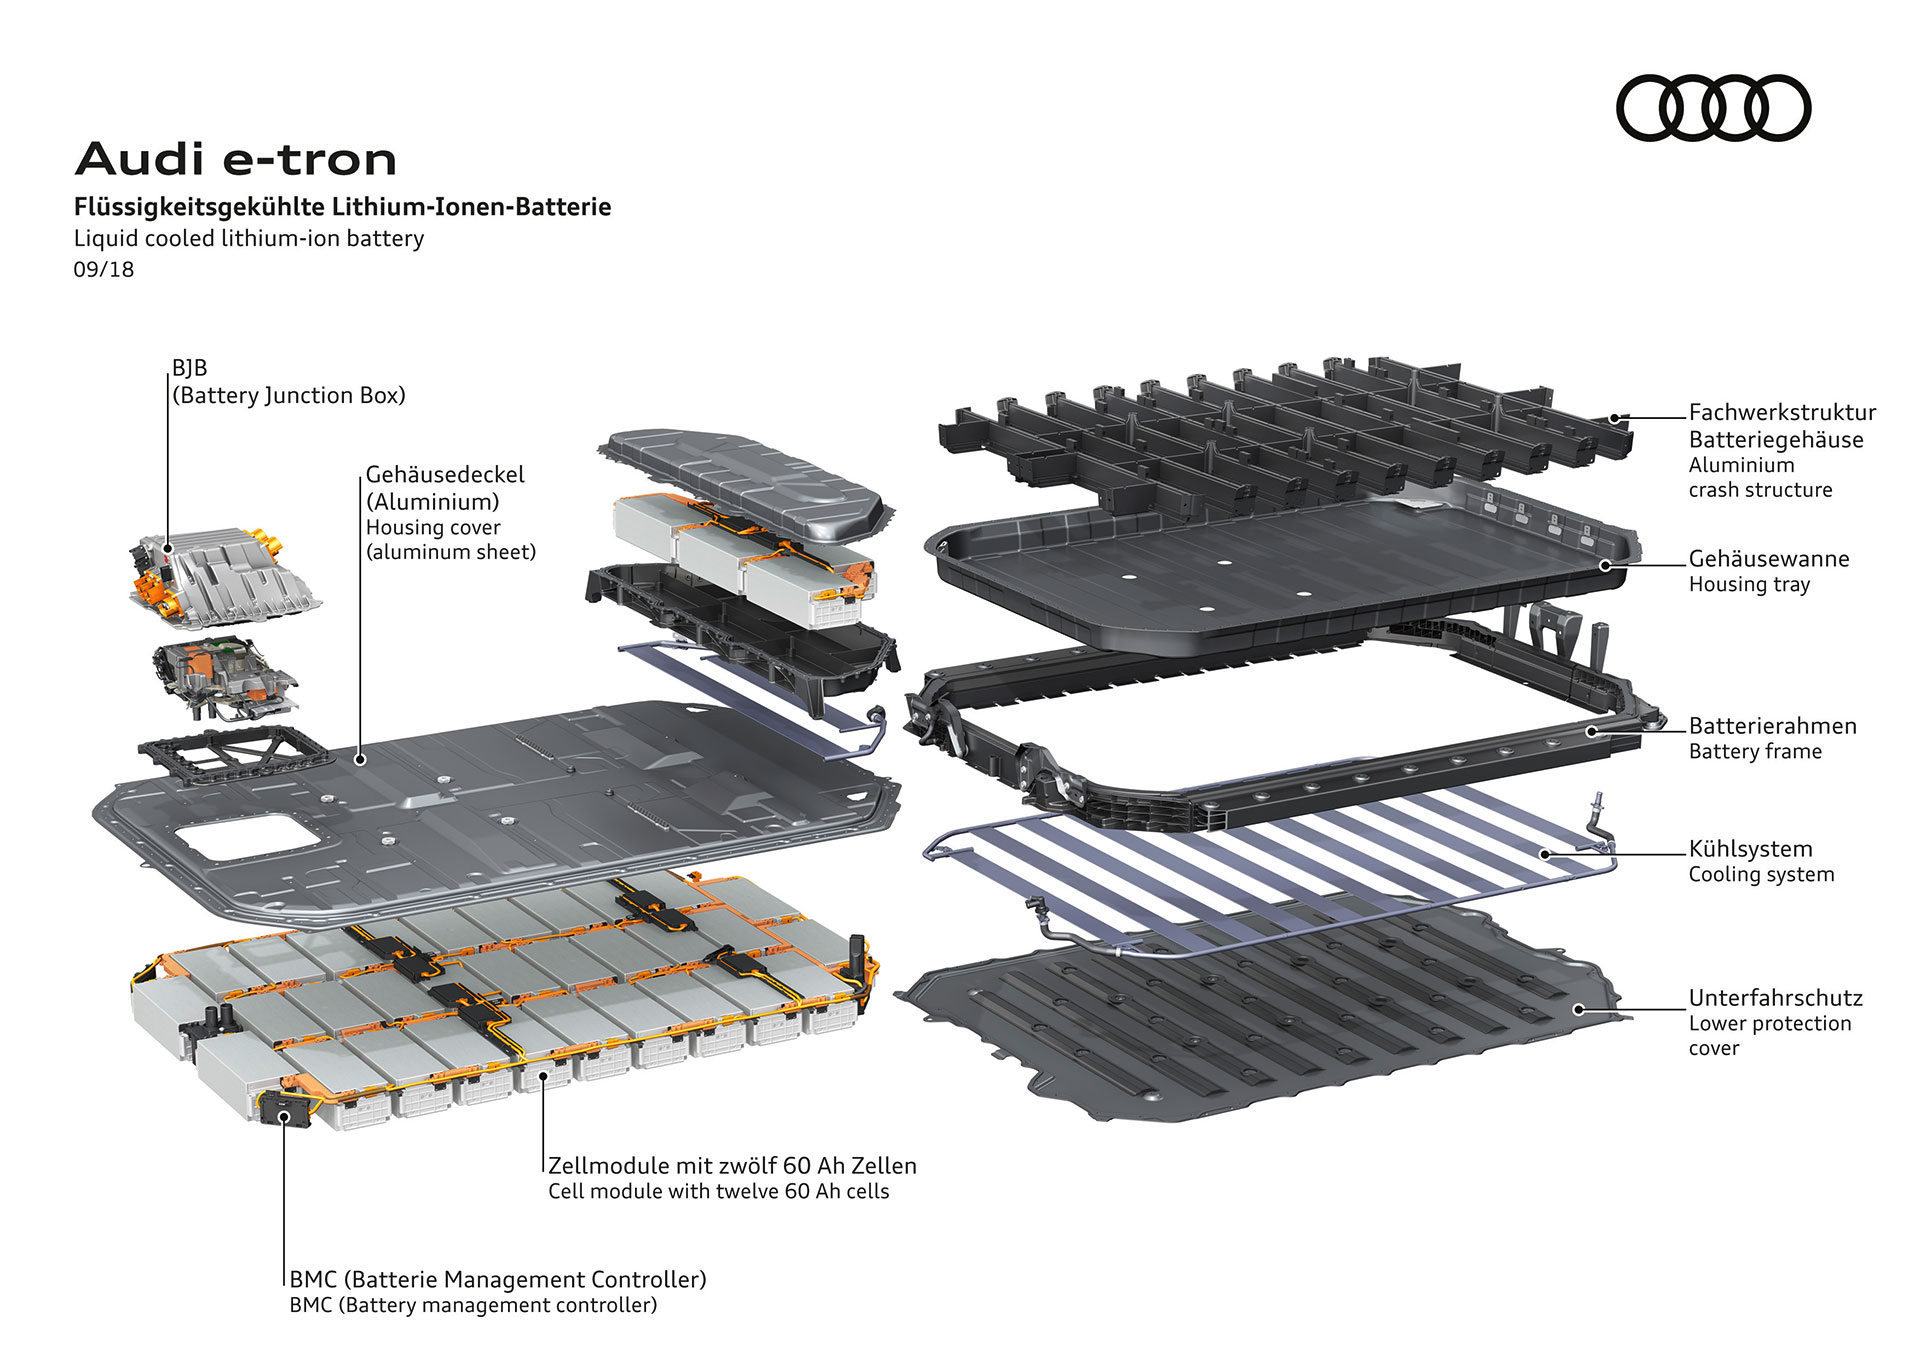 Audi e-tron - Battery-pack components infographic.